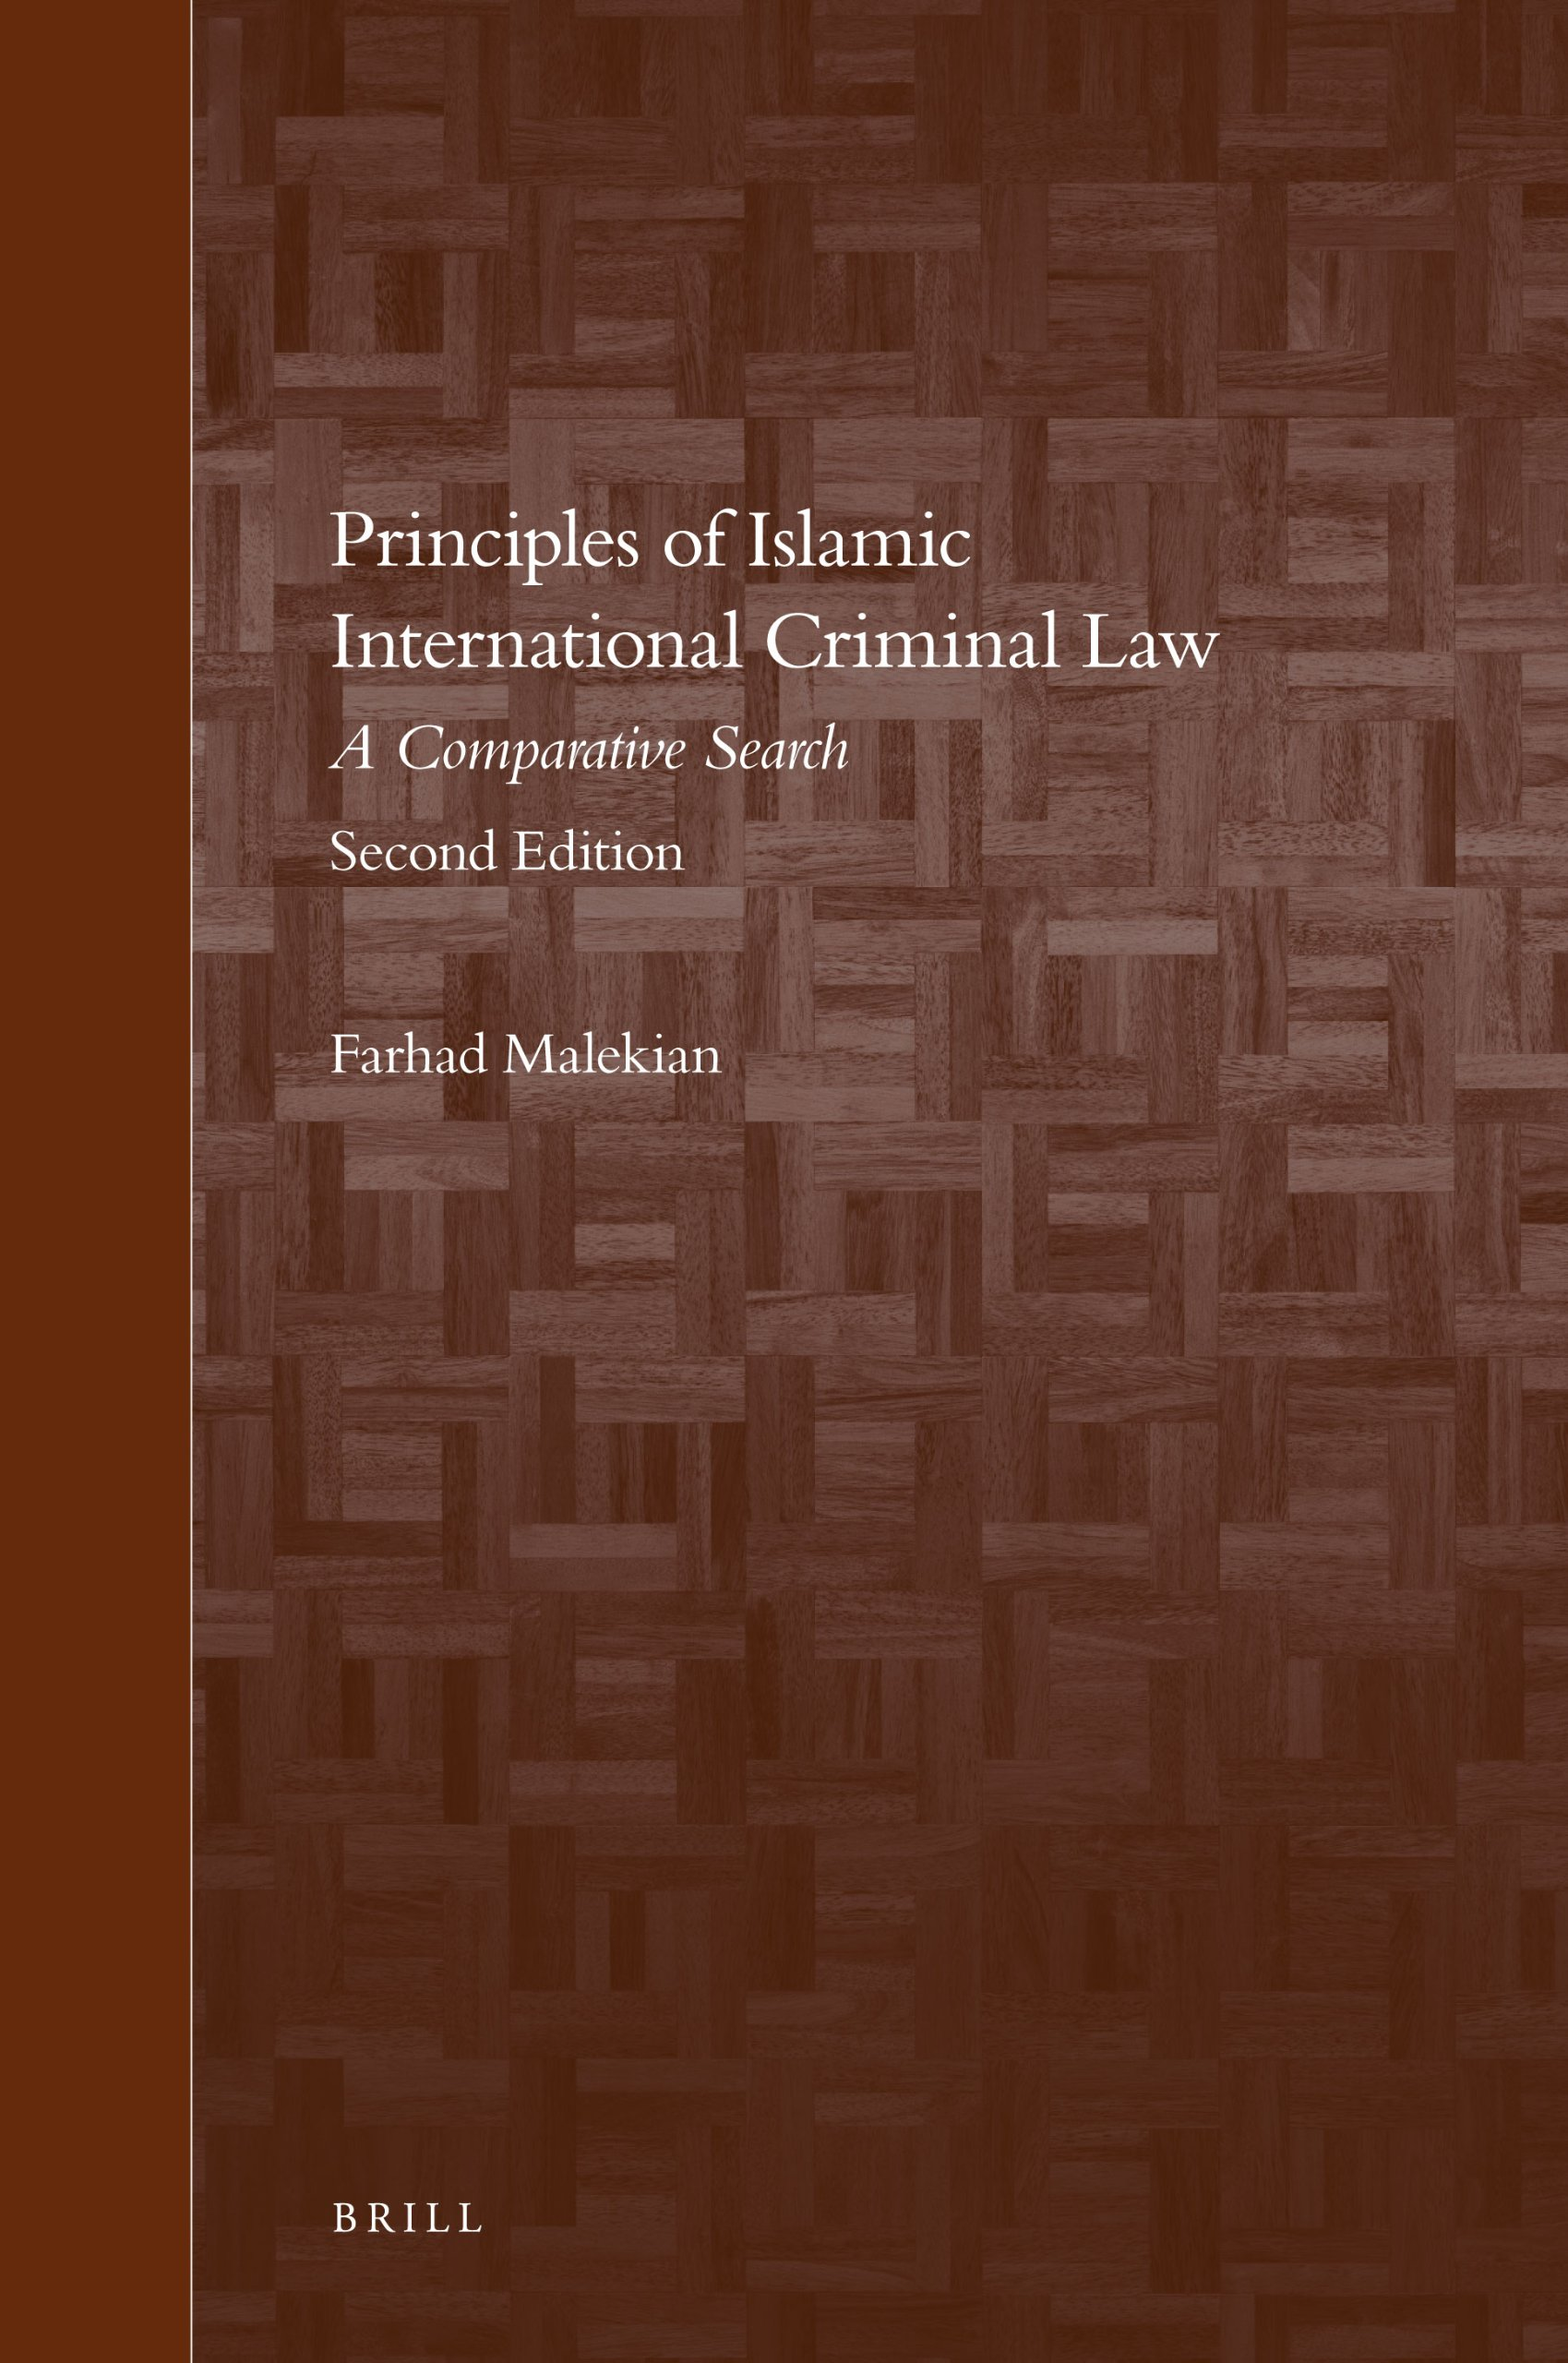 Principles of Islamic International Criminal Law, 2nd Edition